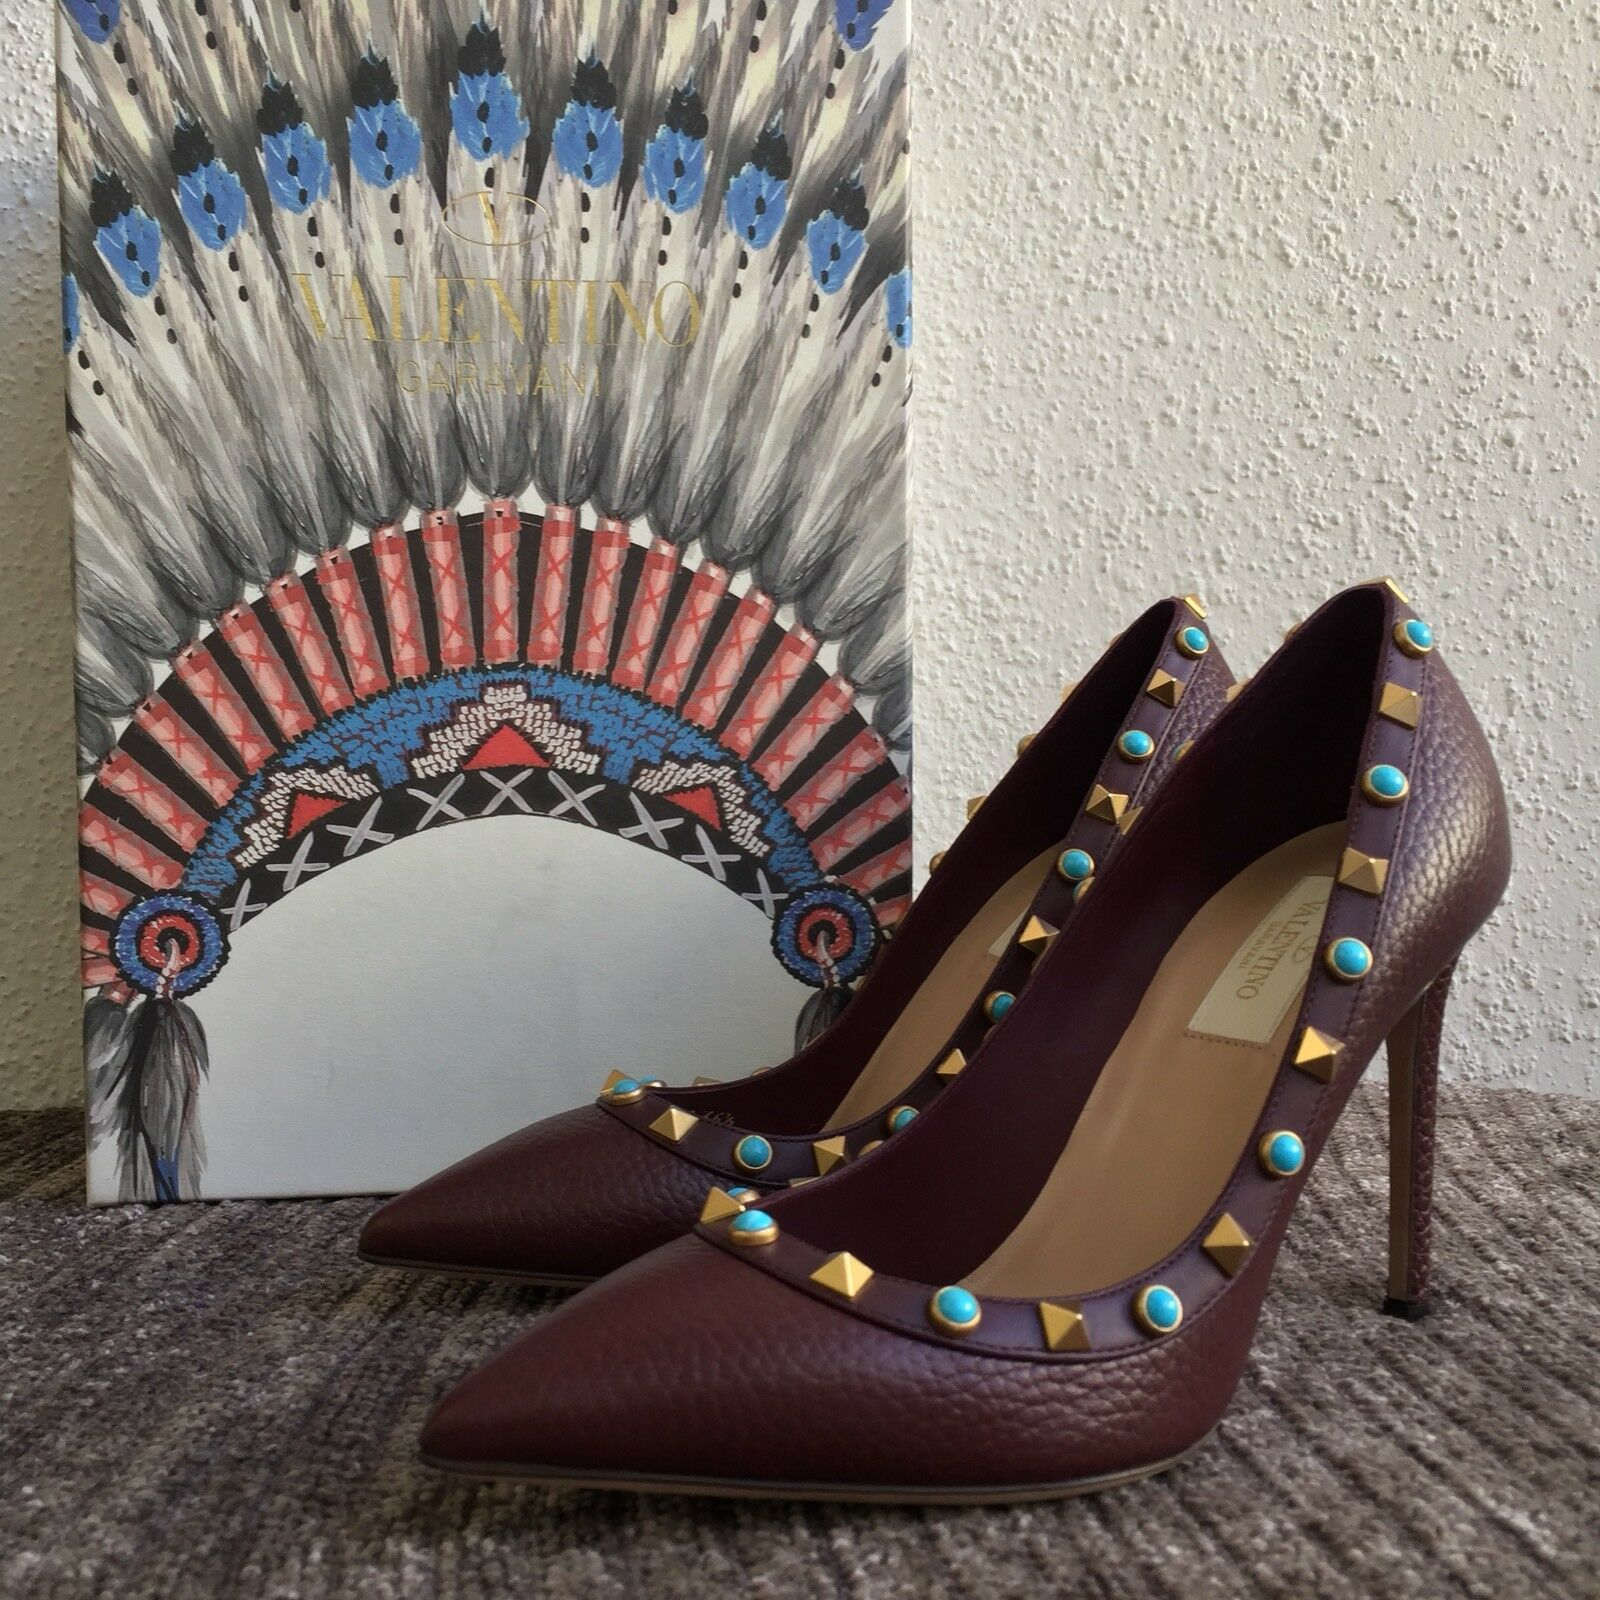 1095 1095 1095 NEW Valentino Rockstud 36.5 Rolling Grained Leather Pointy Pumps Burgundy 0f5b1c